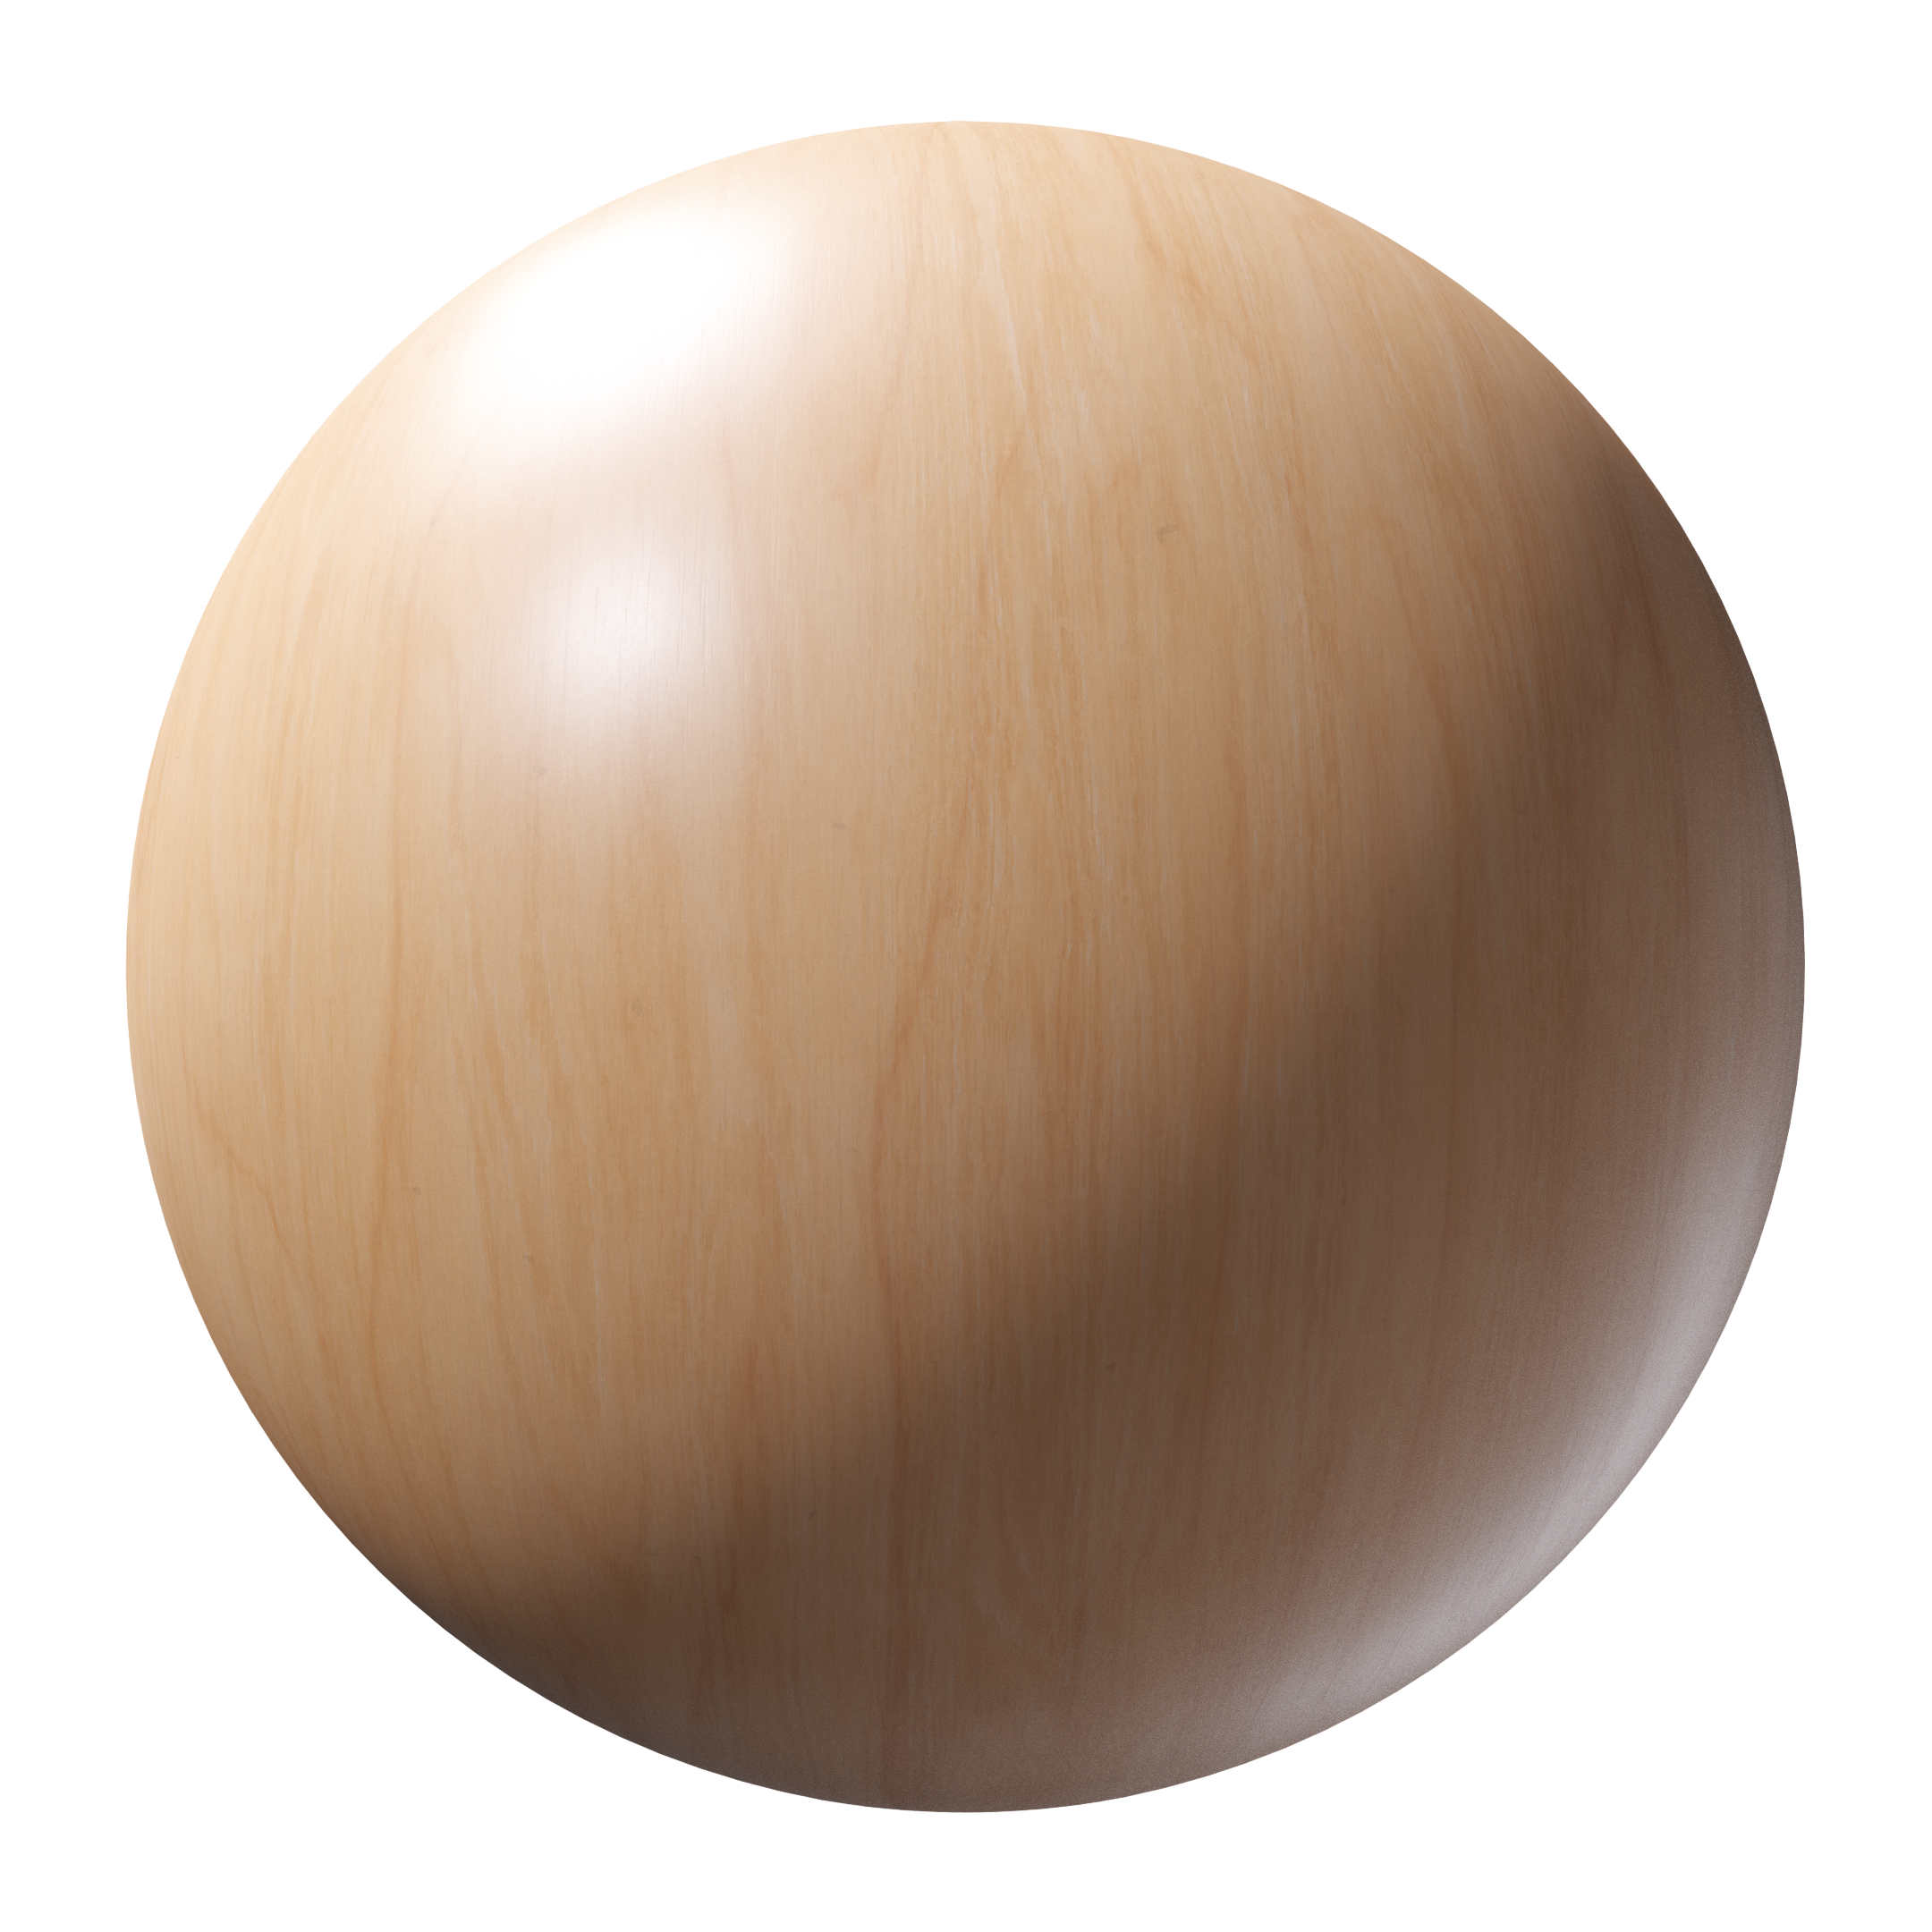 Tcom_Wood_MapleVeneer_thumb1.png